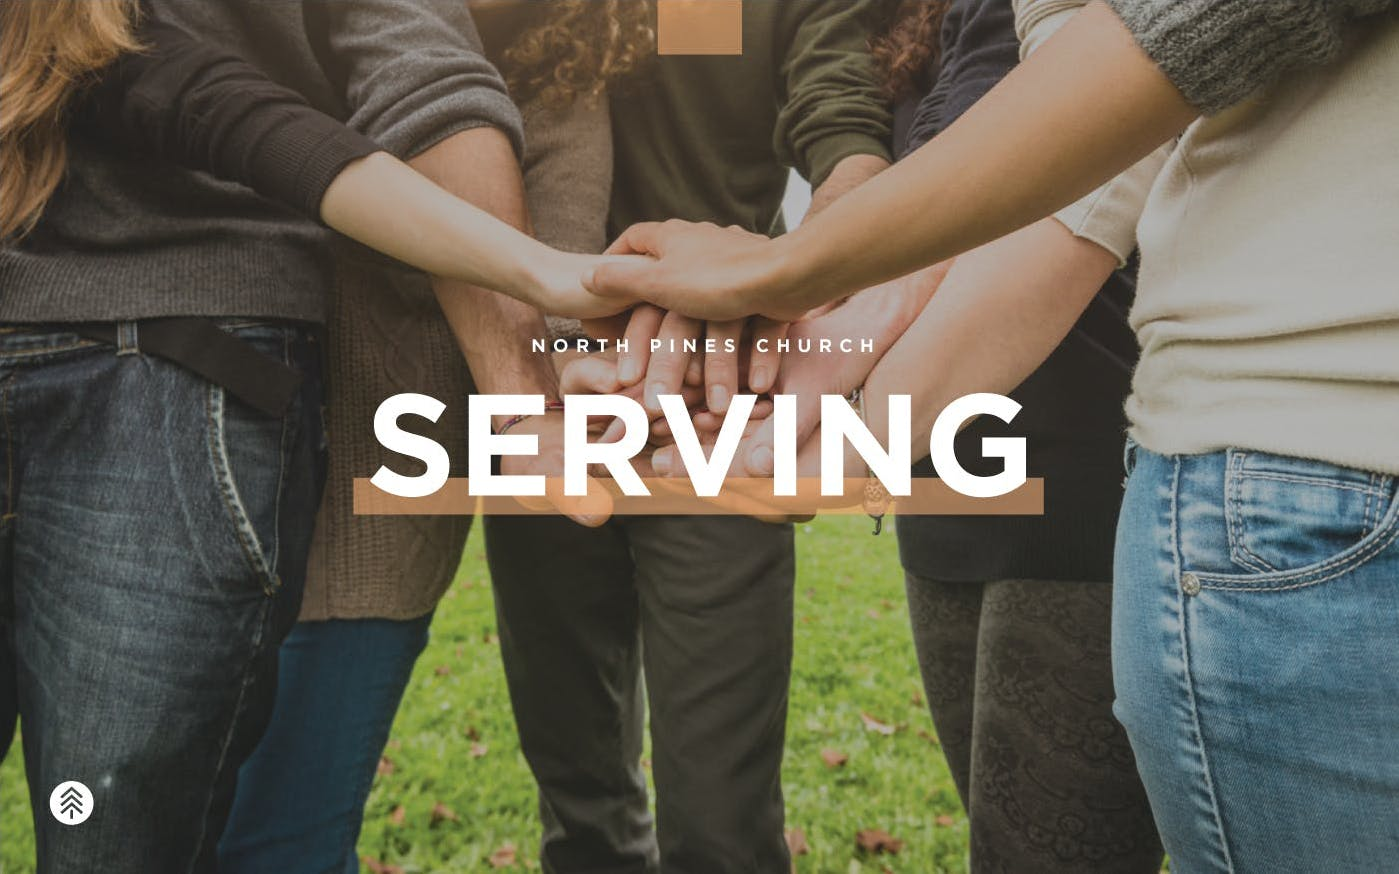 Circle of friends placing hands on top of each other with Serving text overlay.